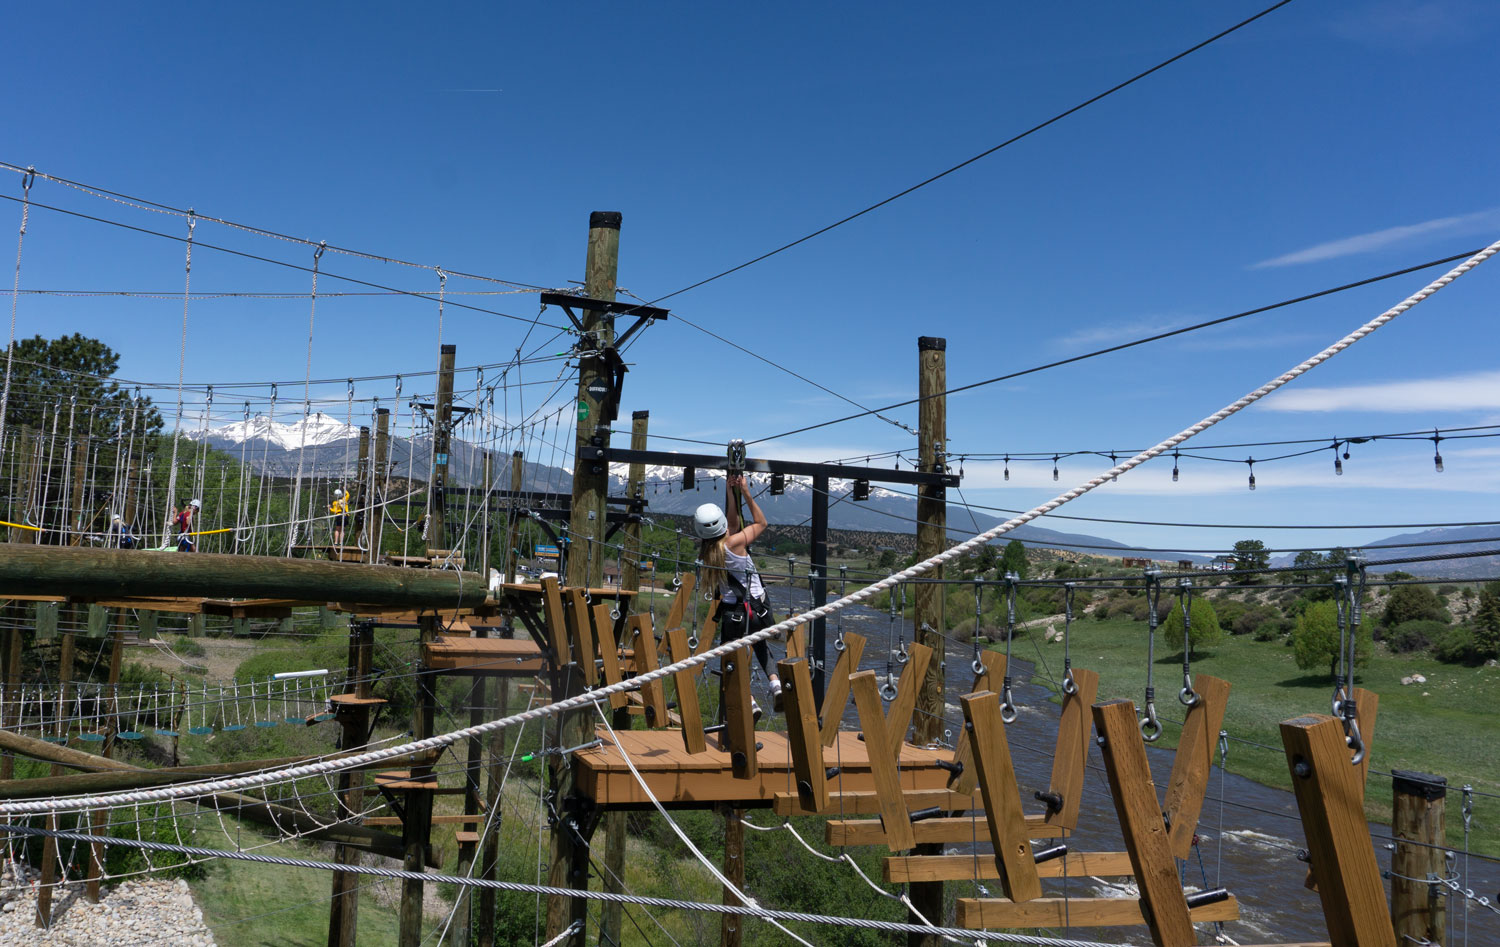 climbing high in the air at the Brown Adventure Park